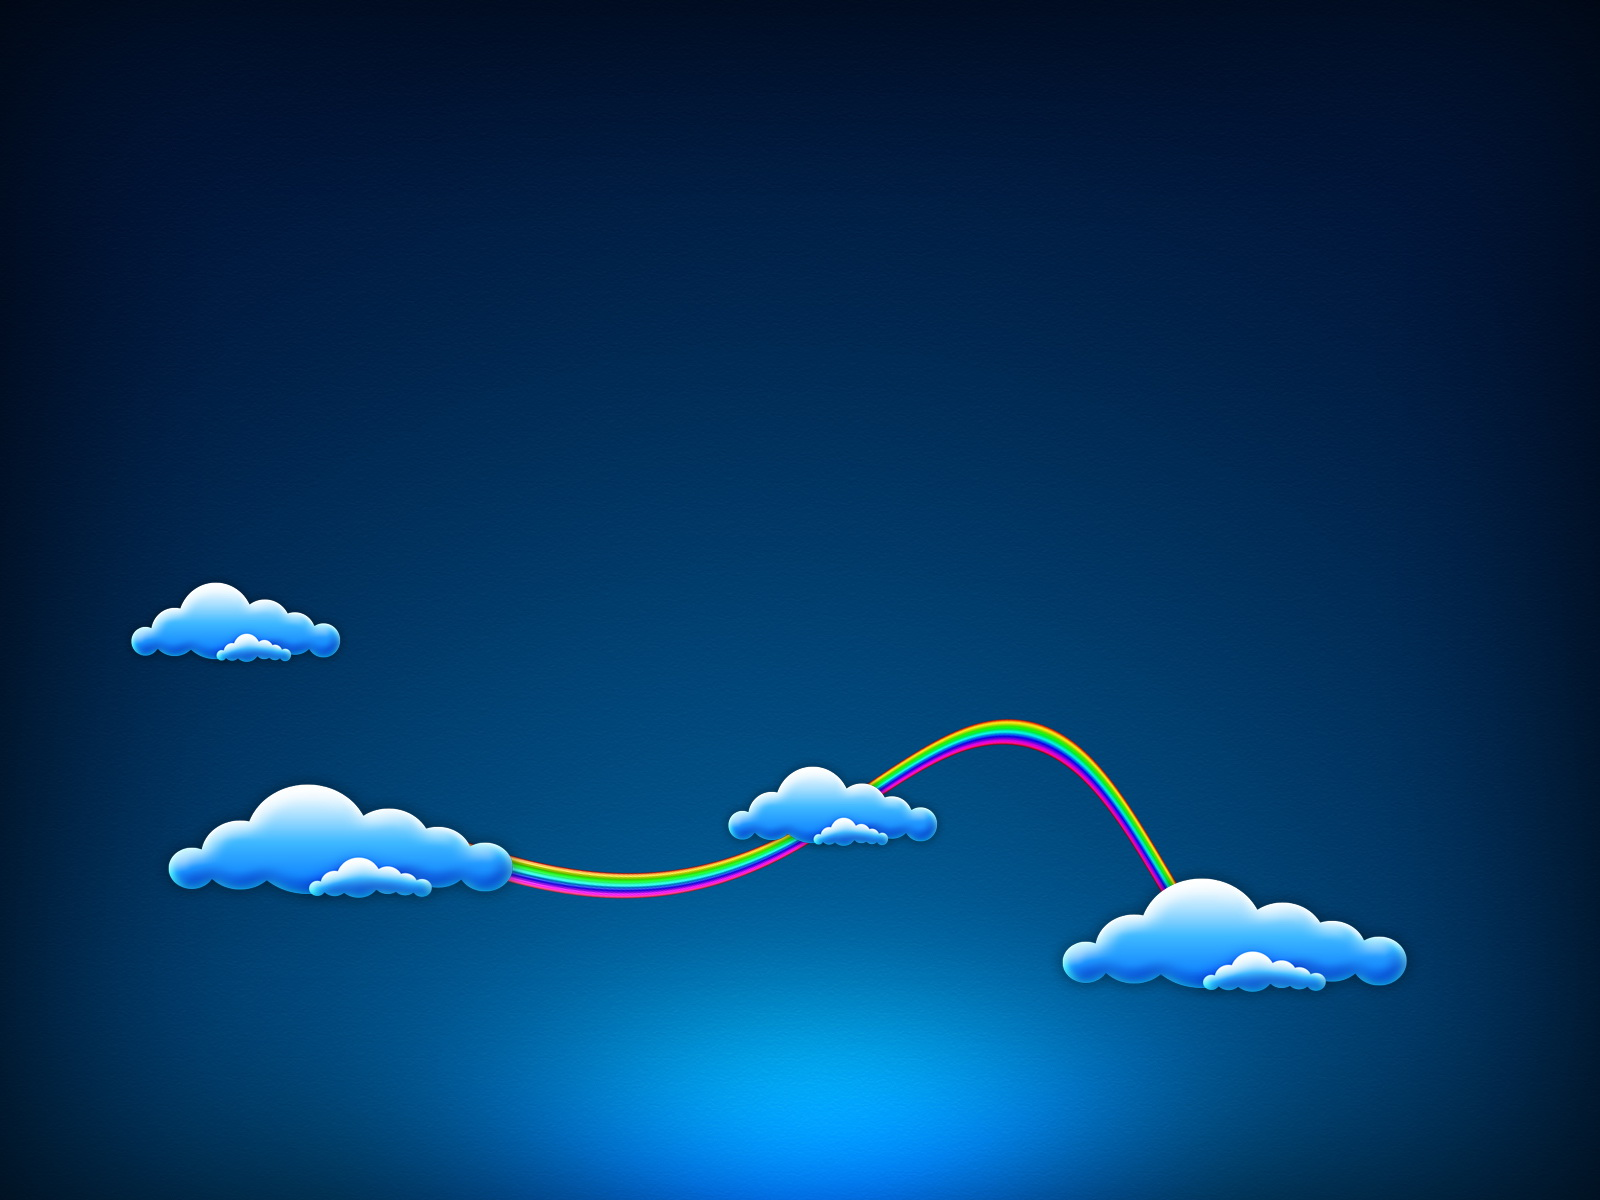 Blue Sky Clouds Wallpapers HD Wallpapers 1600x1200